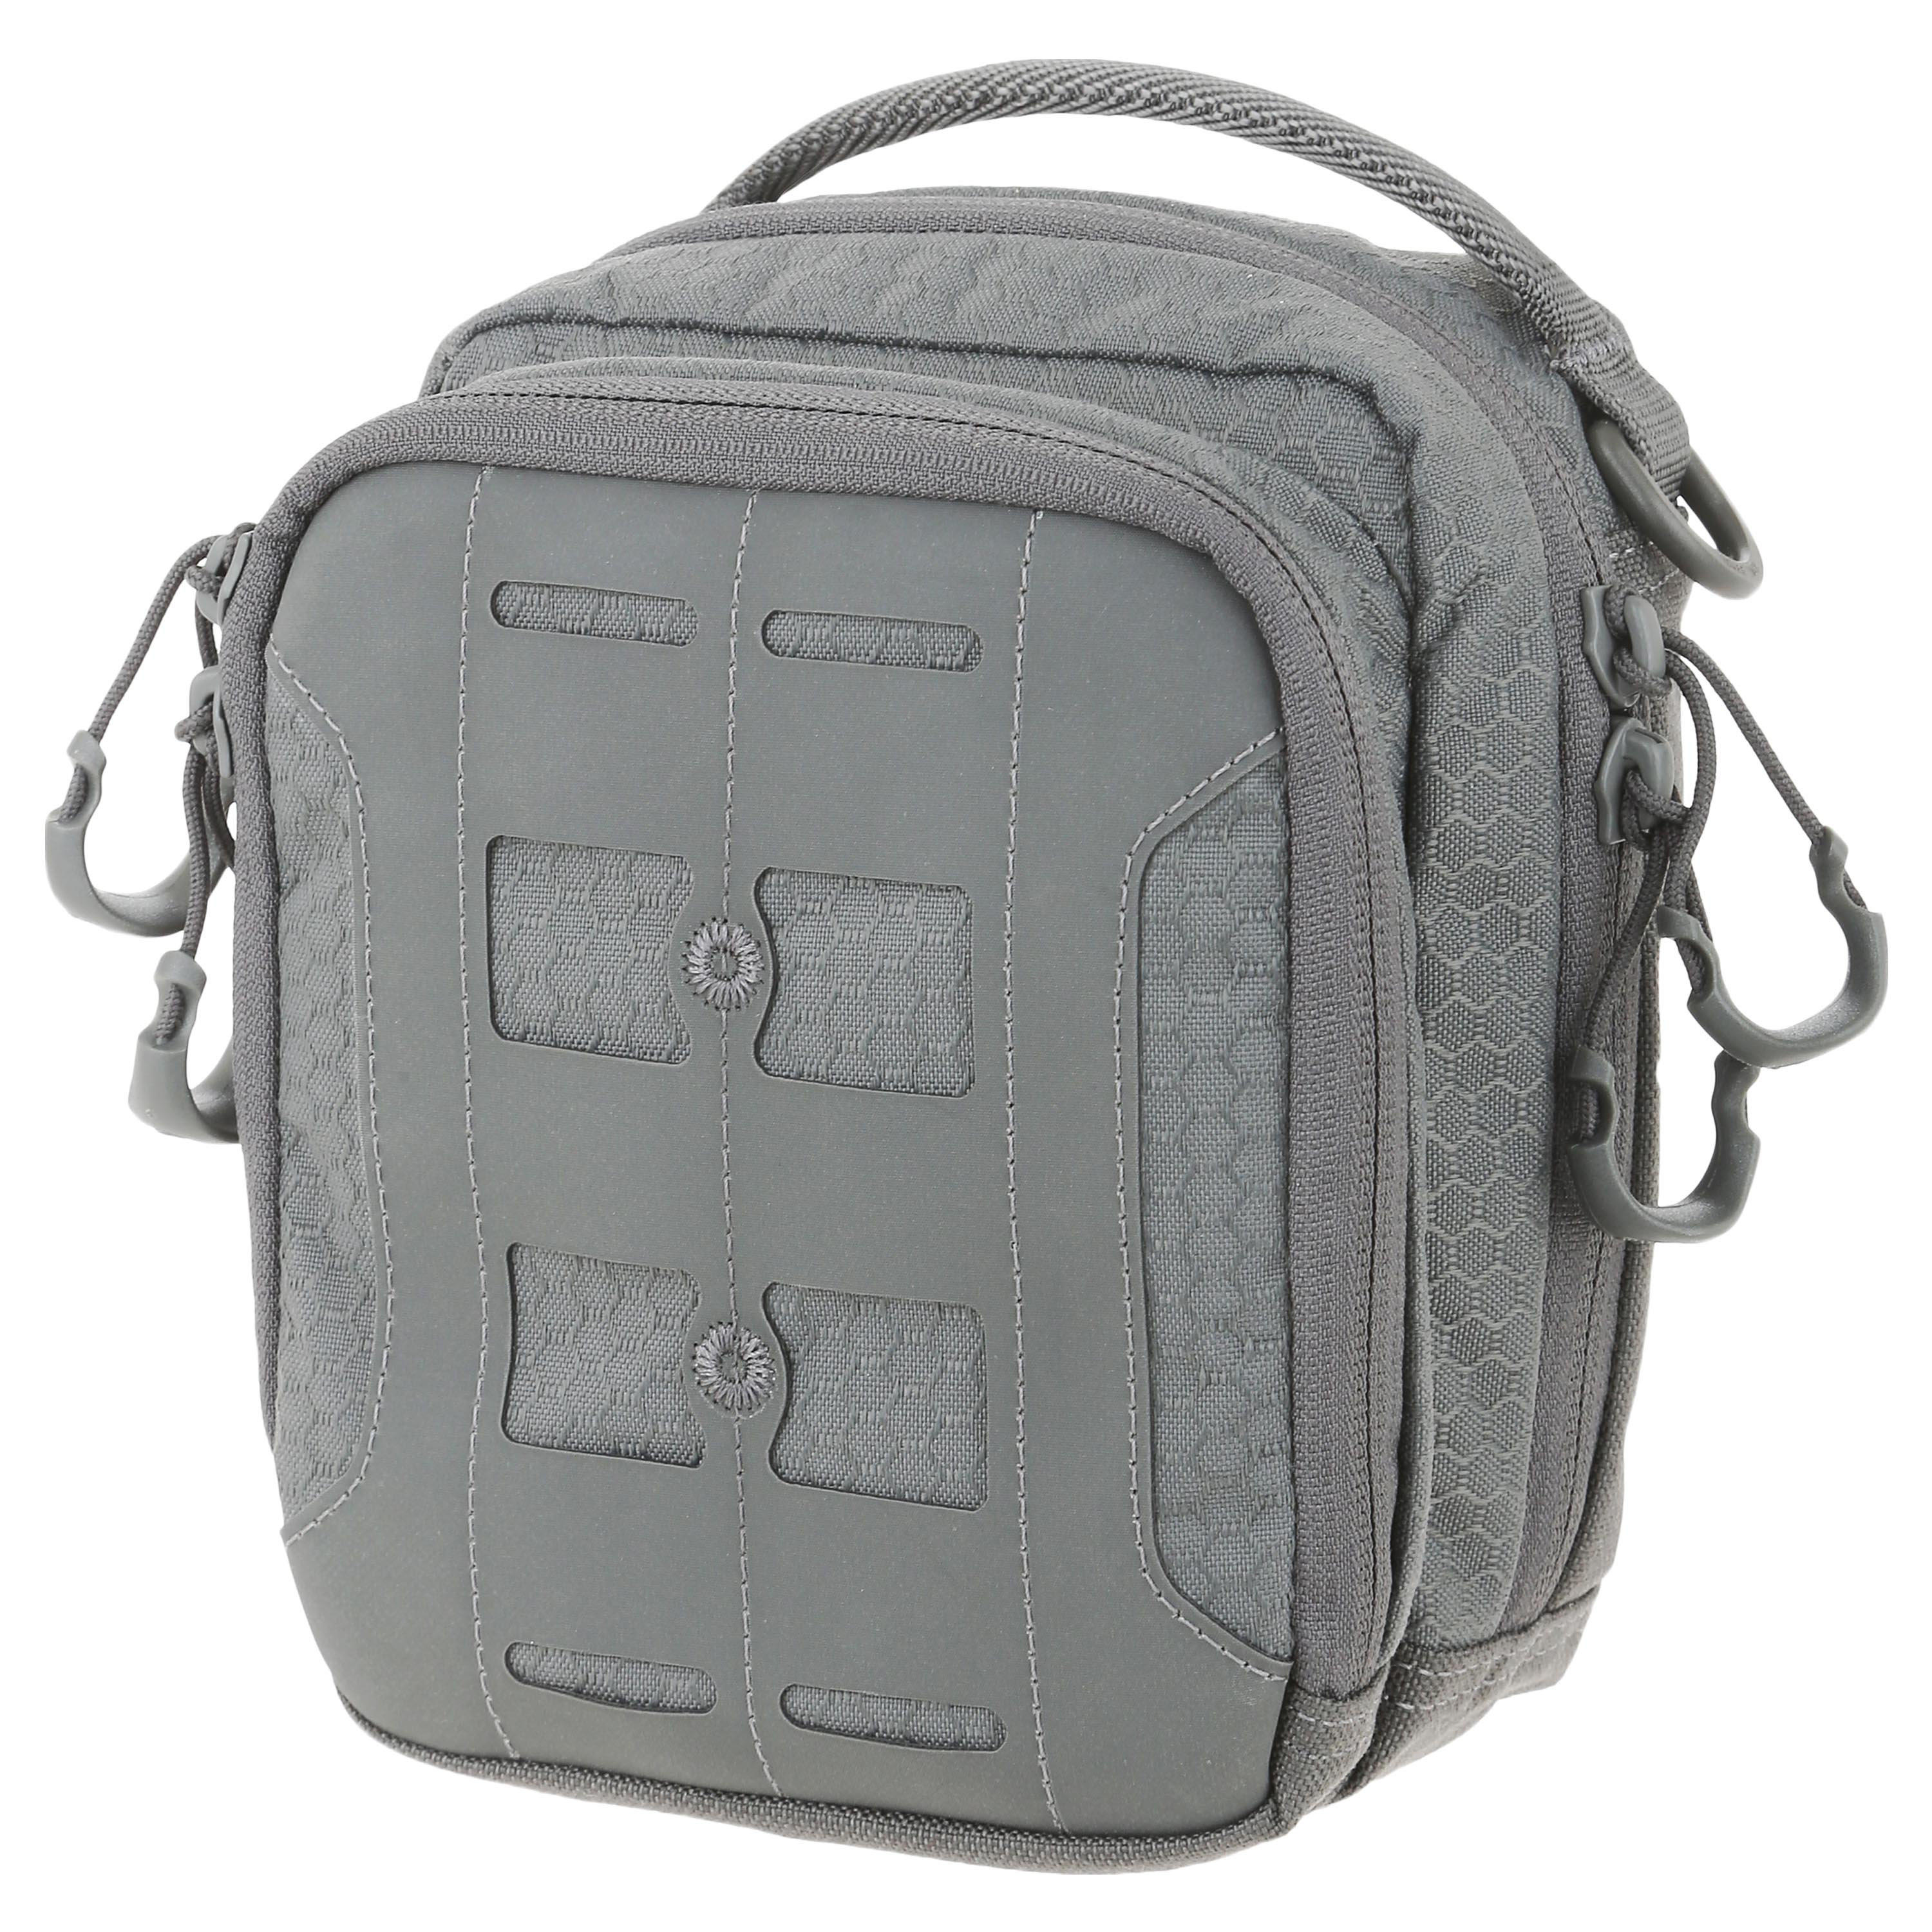 Maxpedition Accordion Utility Pouch grau